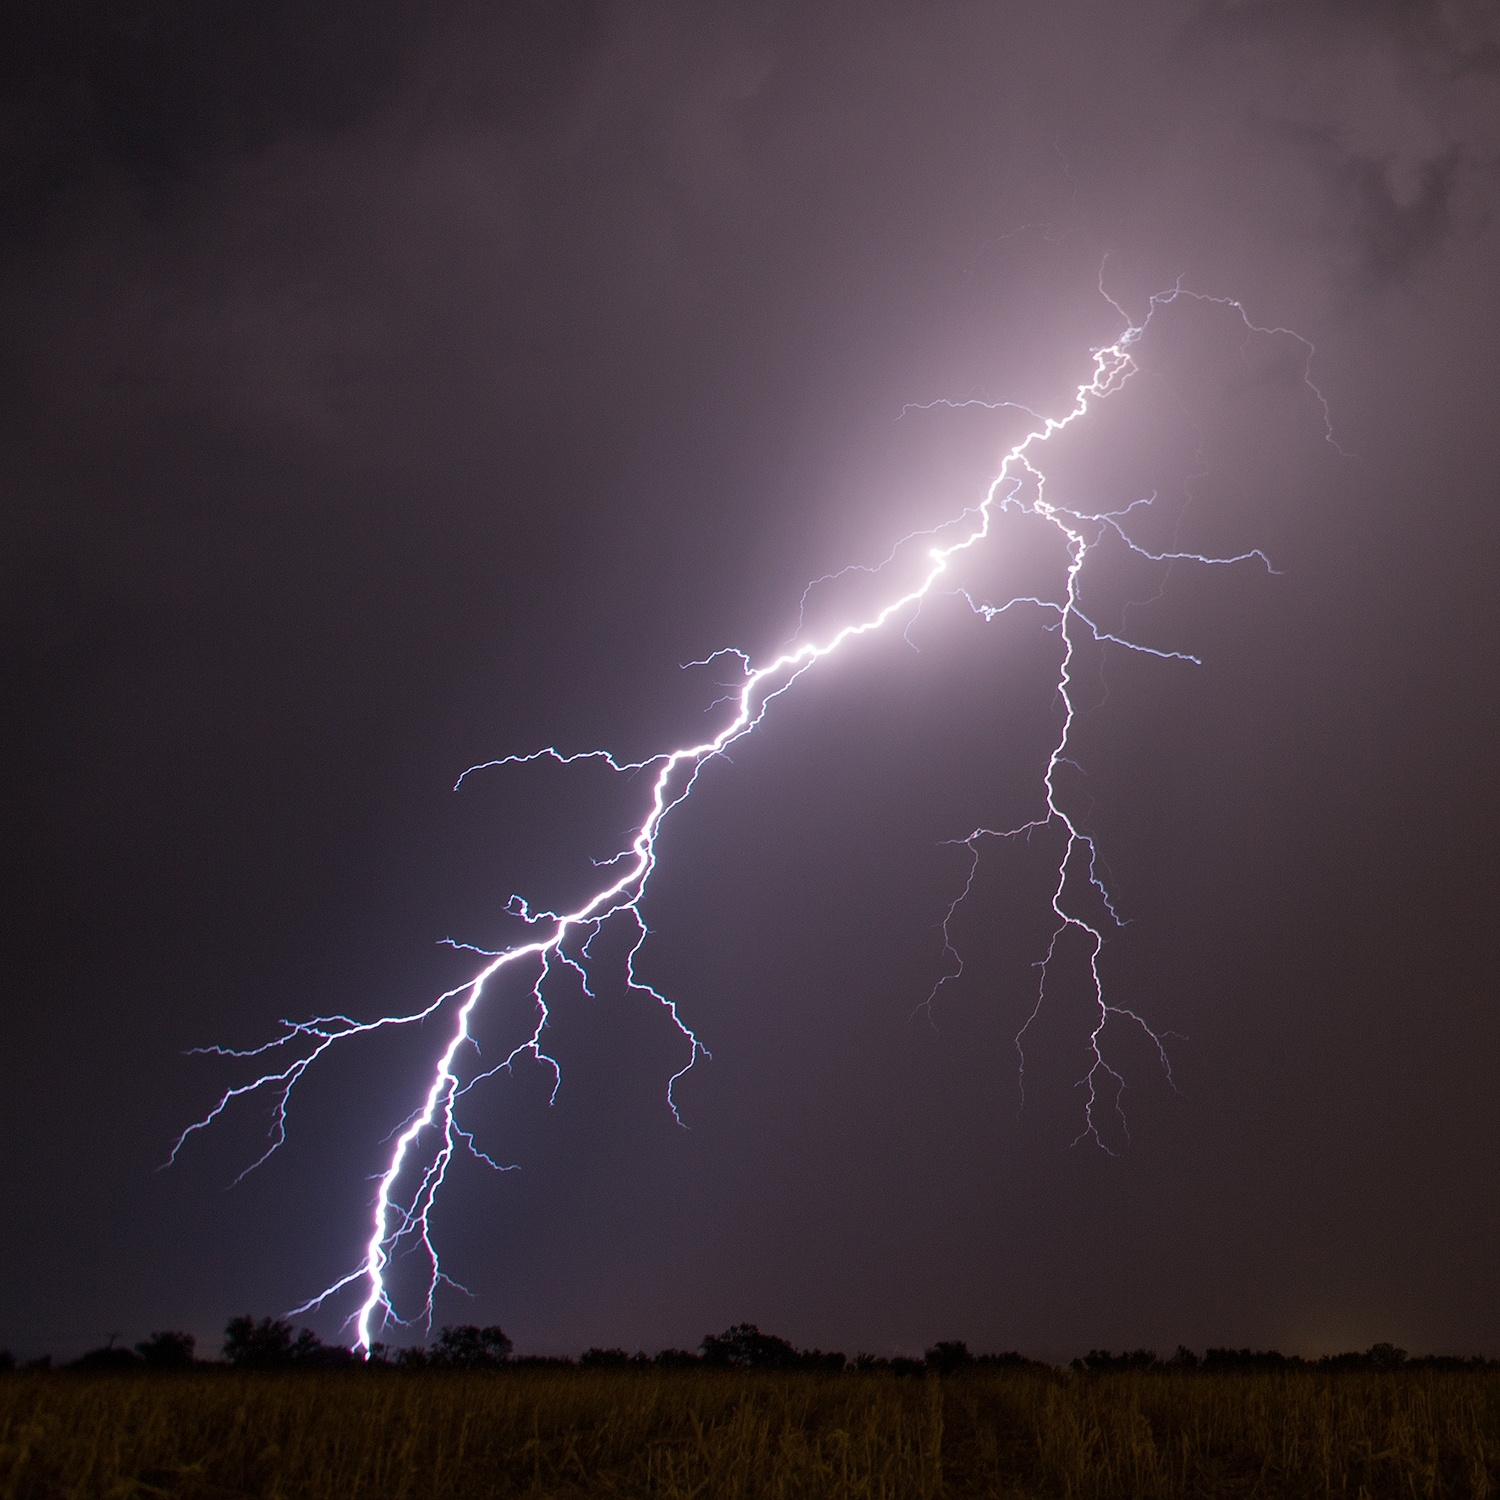 lightning-portrait-2-IG.jpg